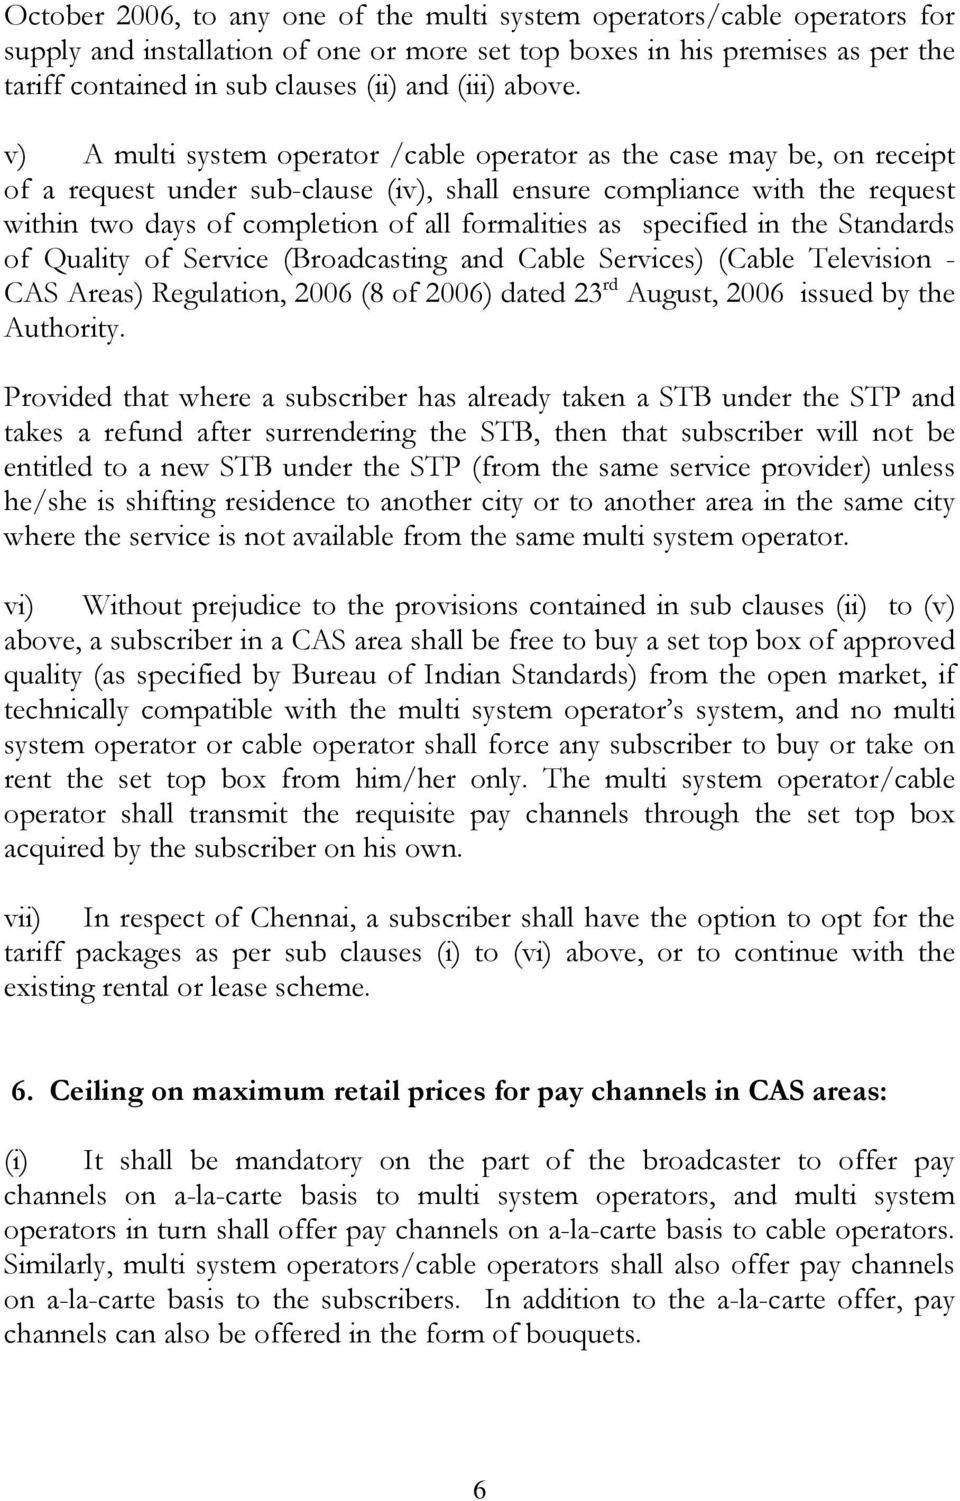 v) A multi system operator /cable operator as the case may be, on receipt of a request under sub-clause (iv), shall ensure compliance with the request within two days of completion of all formalities